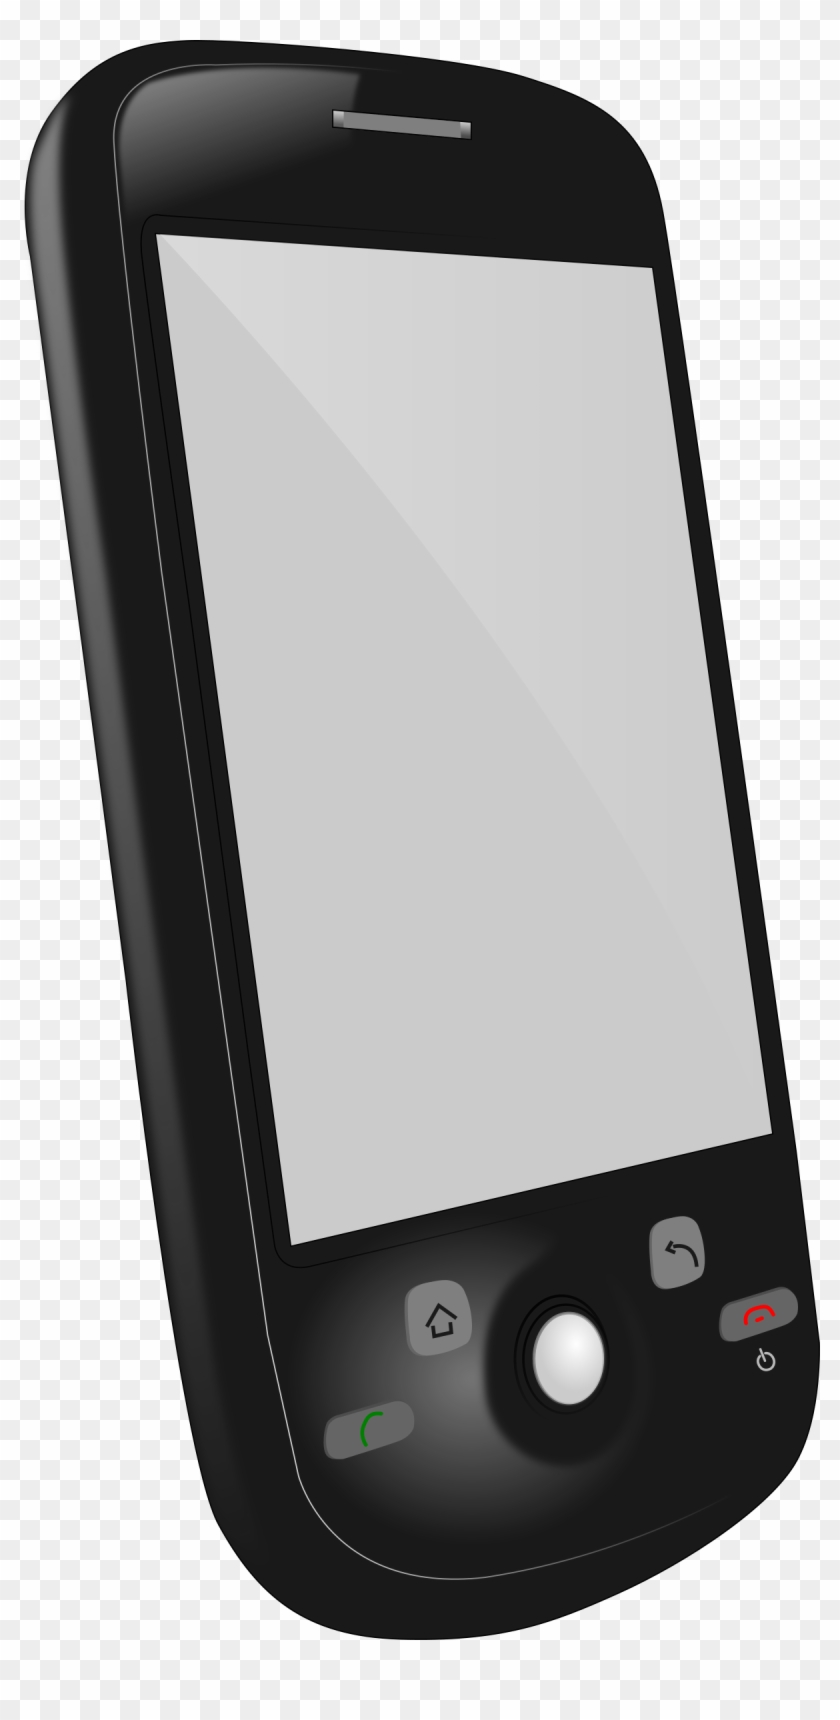 Clipart Cell Phone - Cell Phone Ò Clipart #21363